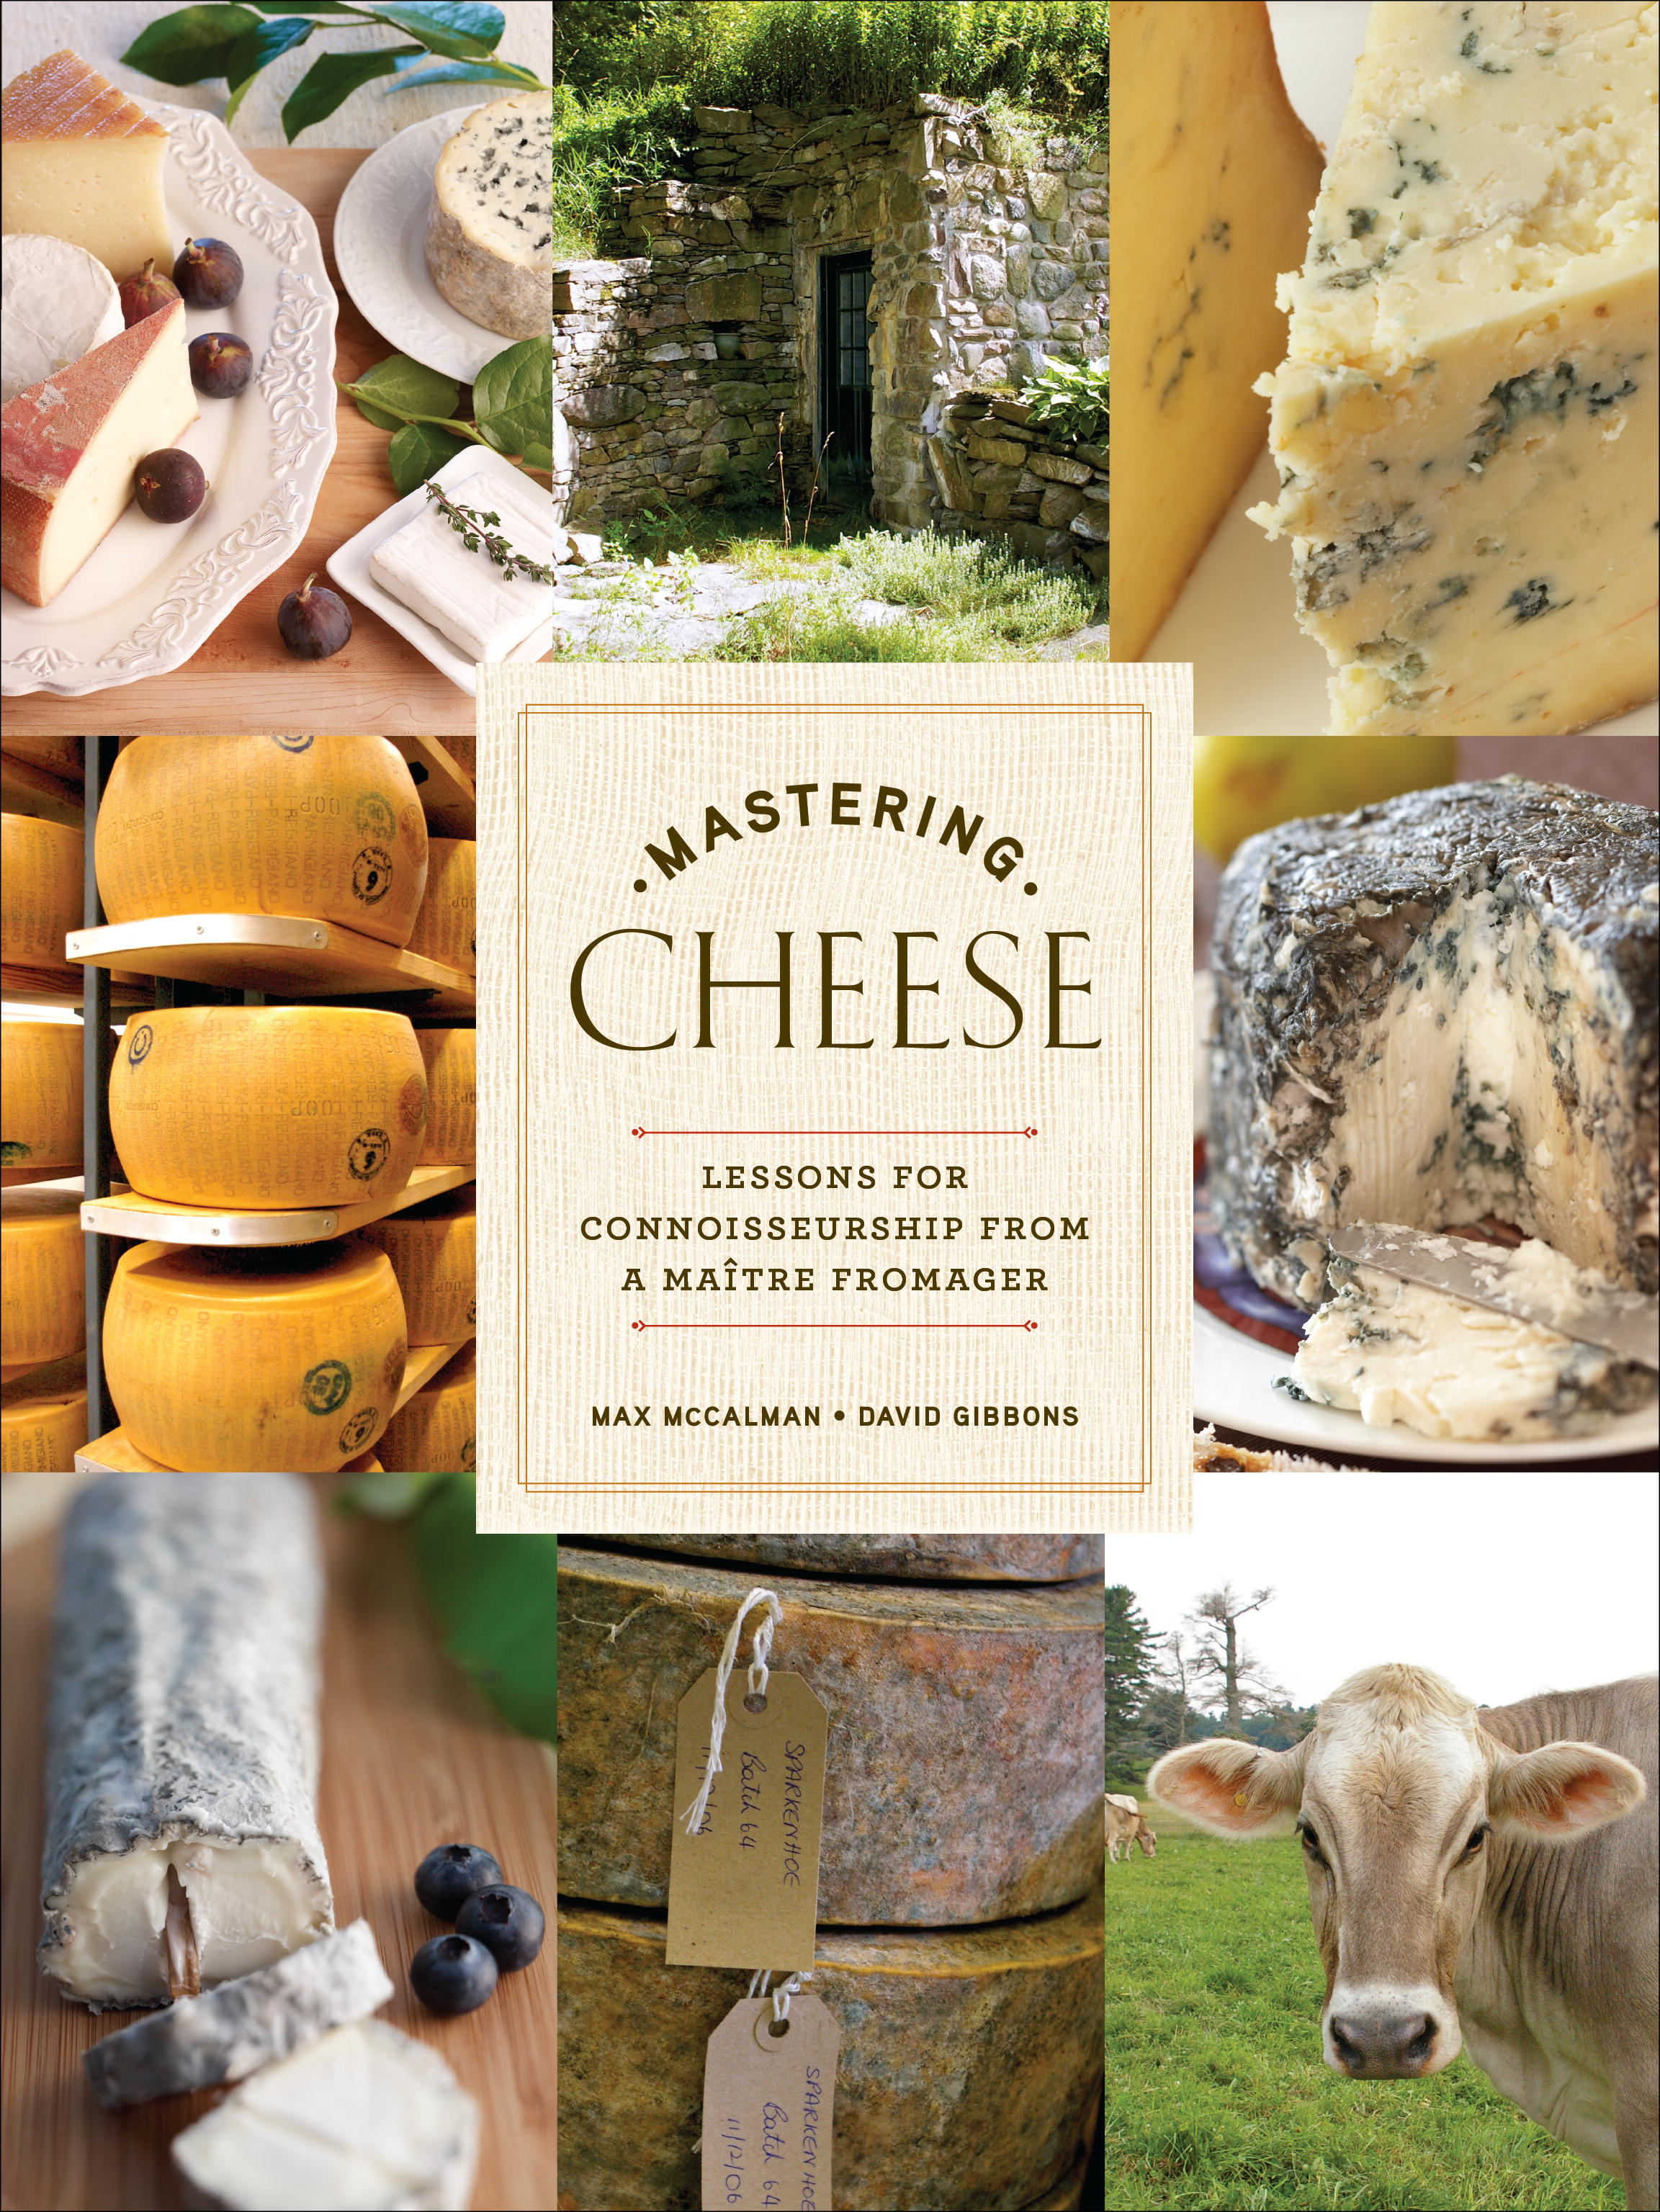 Mastering Cheese by Max McCalman